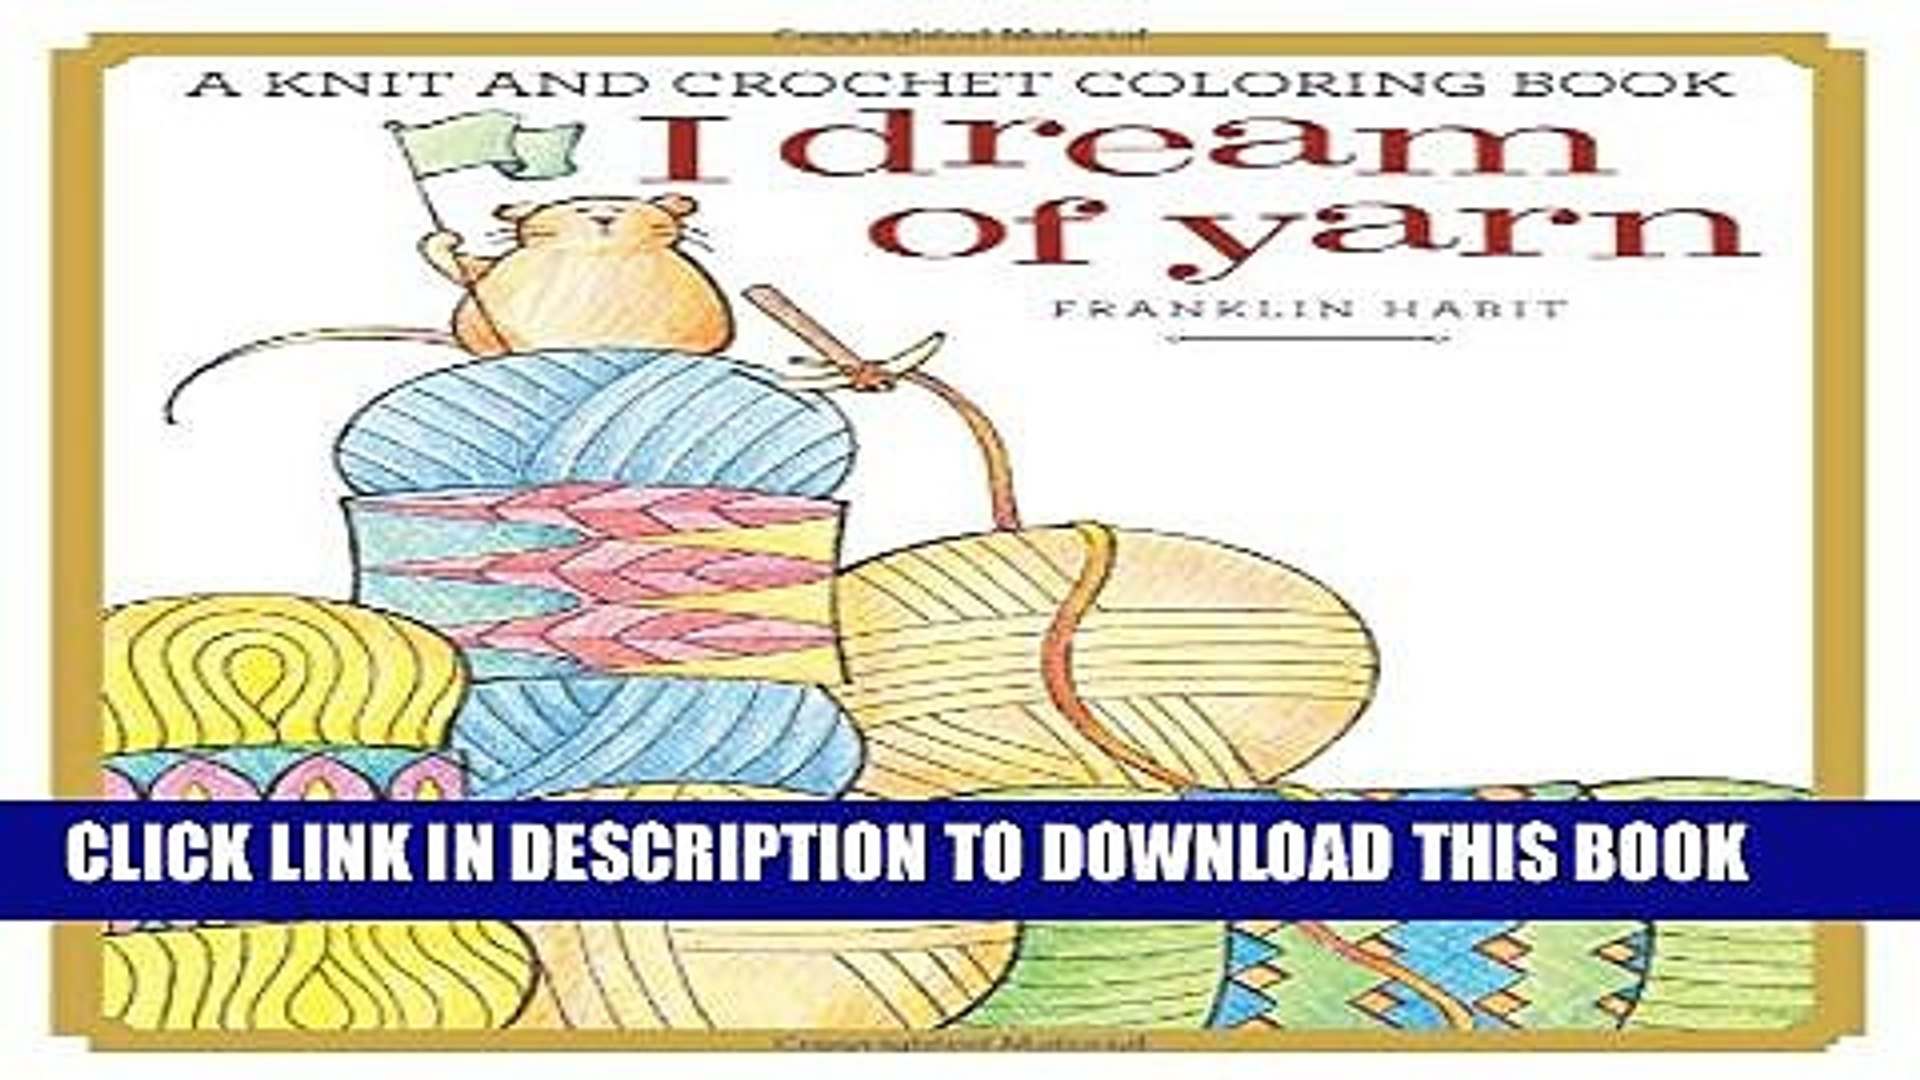 [PDF] I Dream of Yarn: A Knit and Crochet Coloring Book Full Online